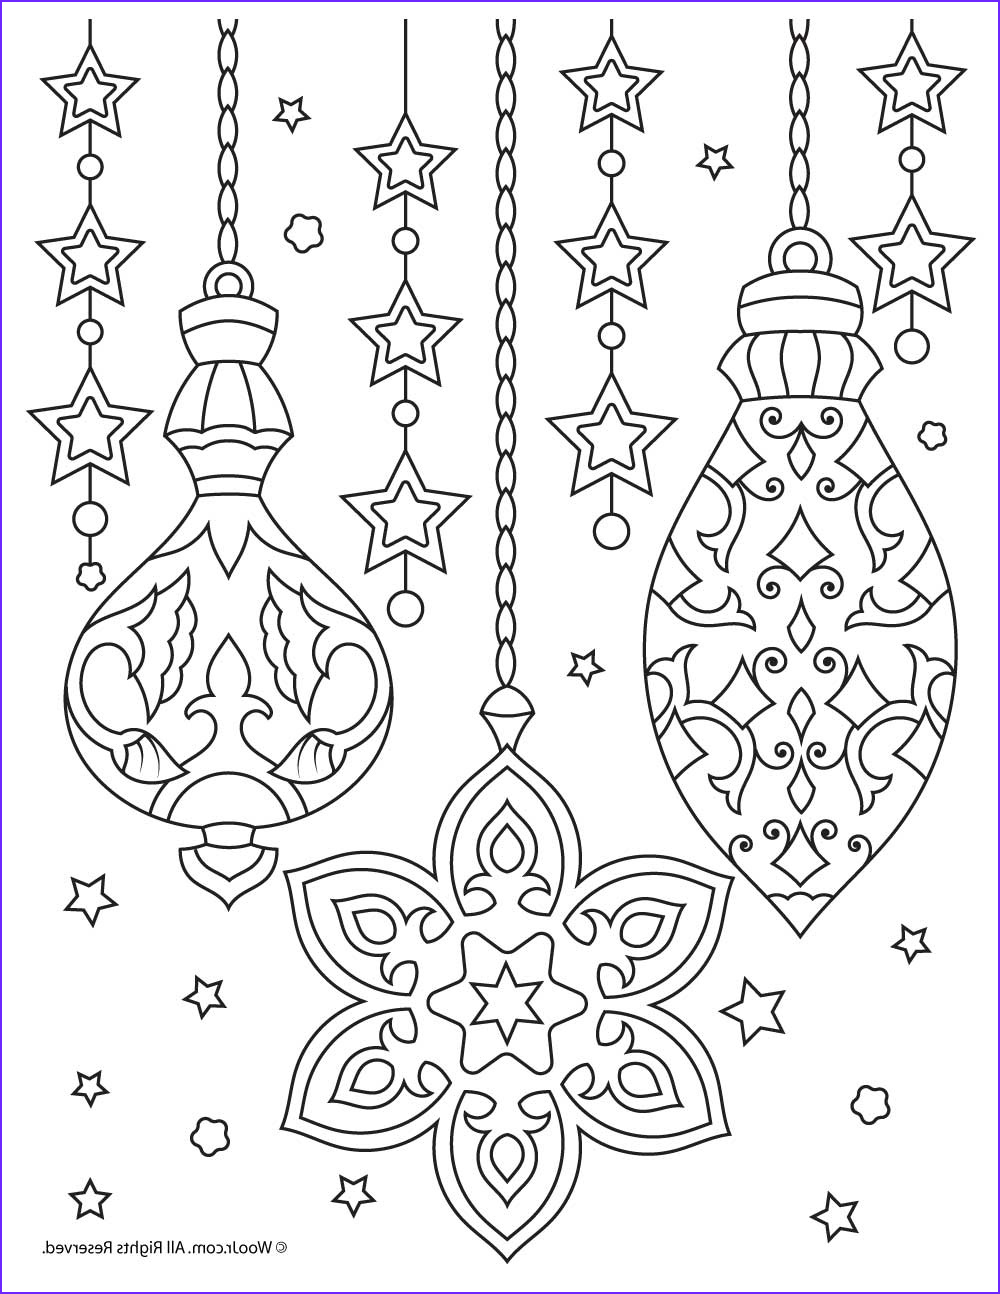 Christmas Adult Coloring Beautiful Images Christmas Ornaments Adult Coloring Printable